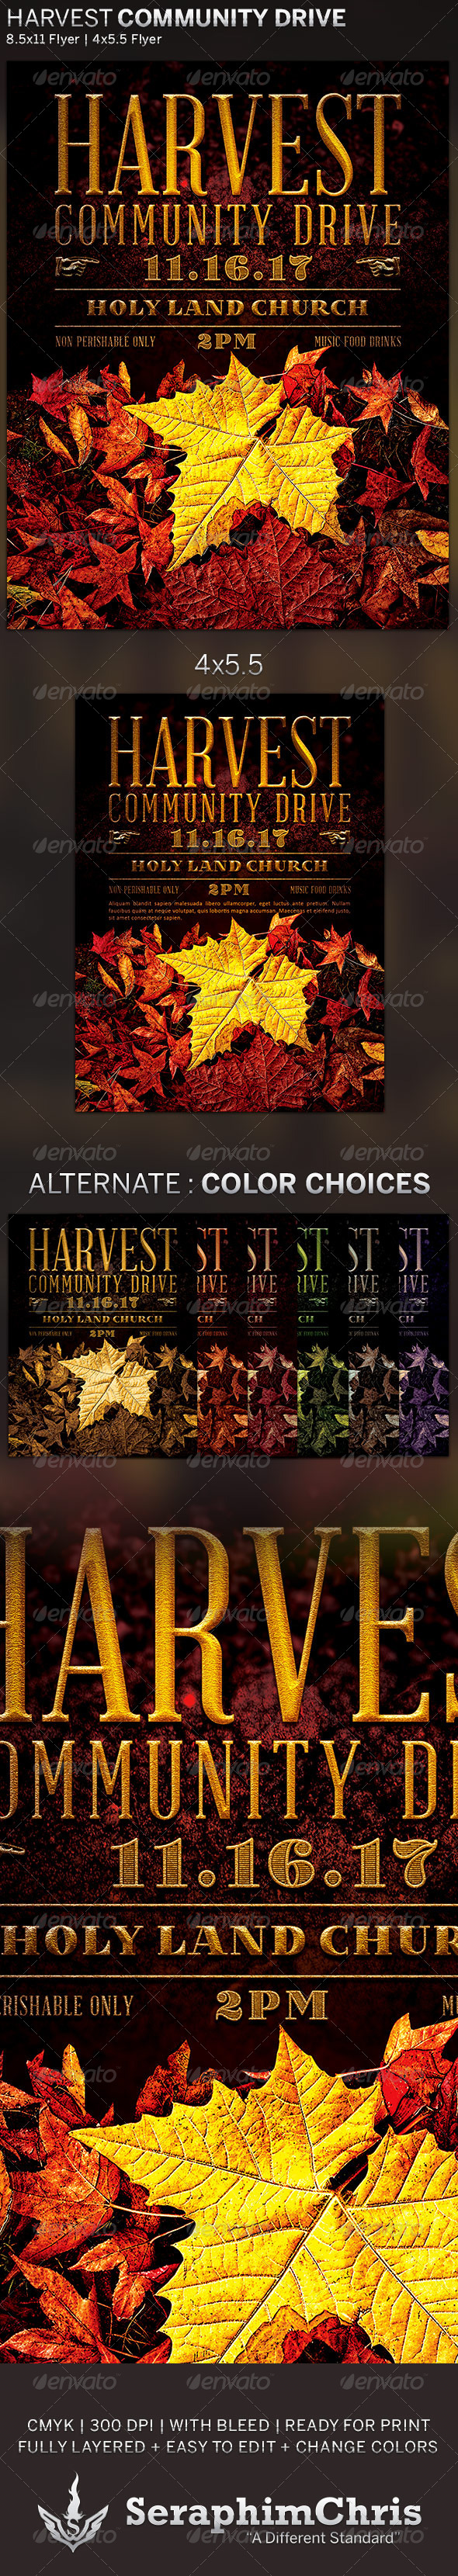 Harvest Community Drive: Church Flyer Template - Church Flyers